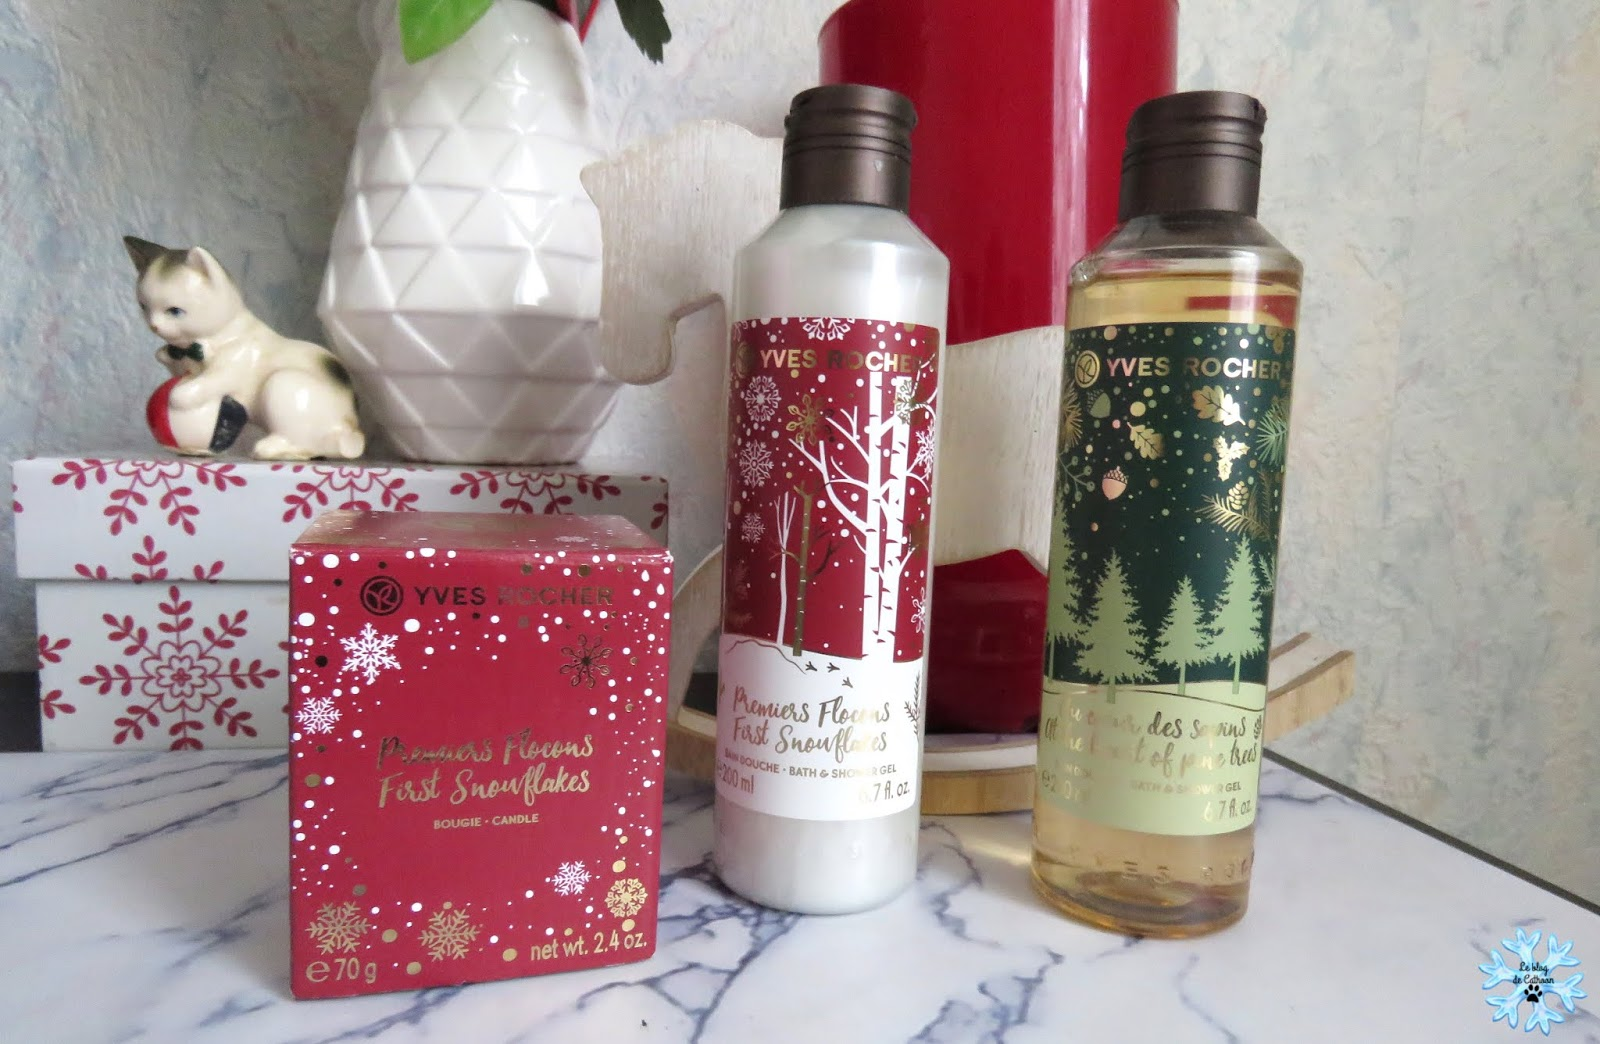 Yves Rocher et sa collection de Noël 2019